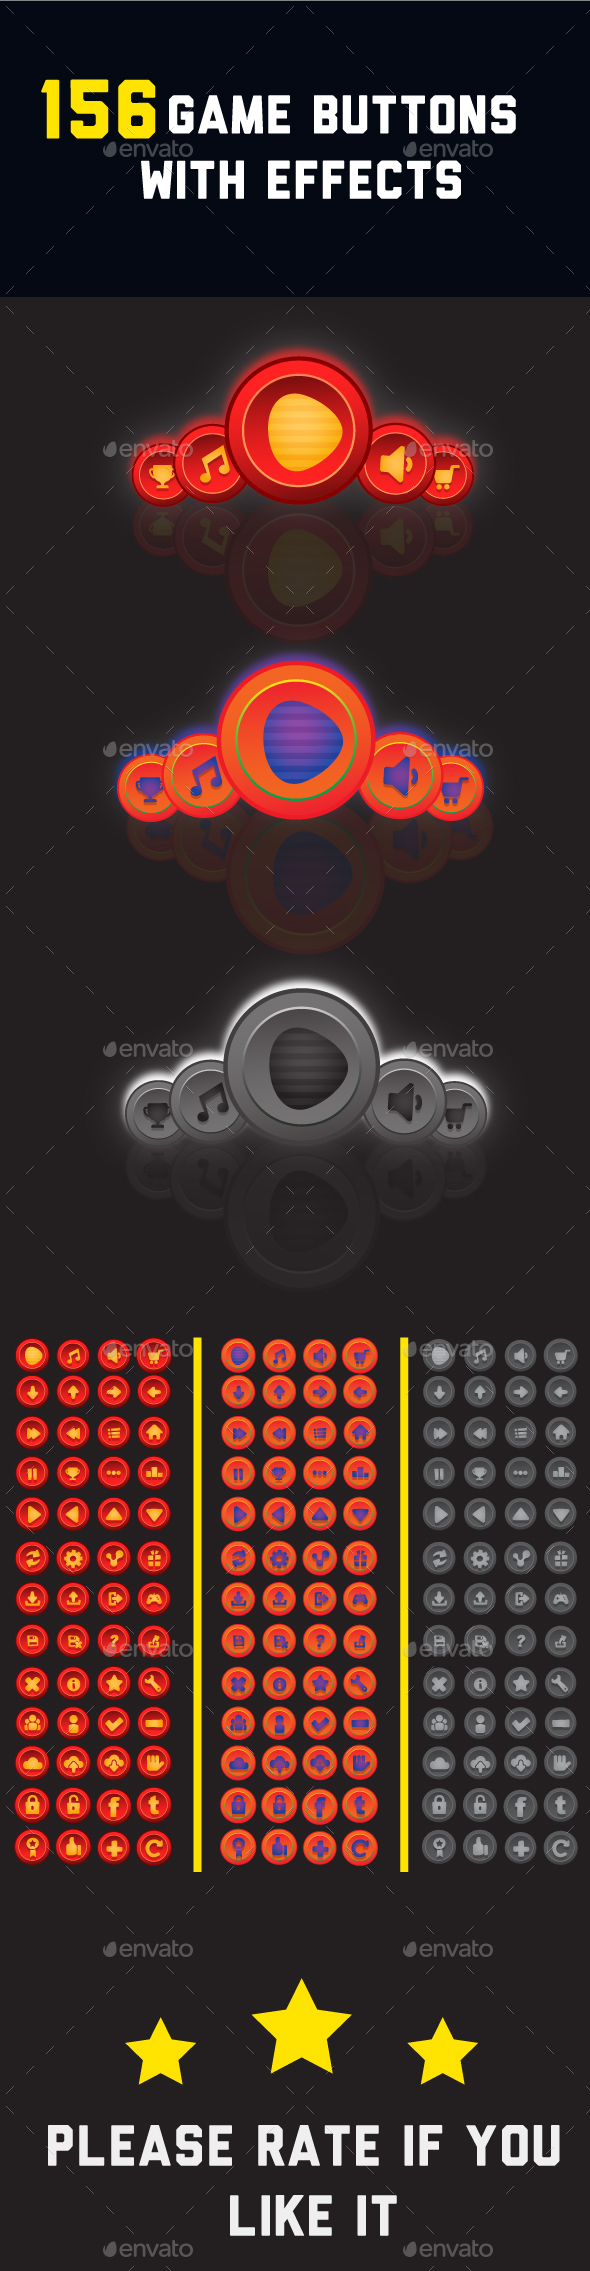 Graphicriver 156 Game Buttons For Your Game 19297781